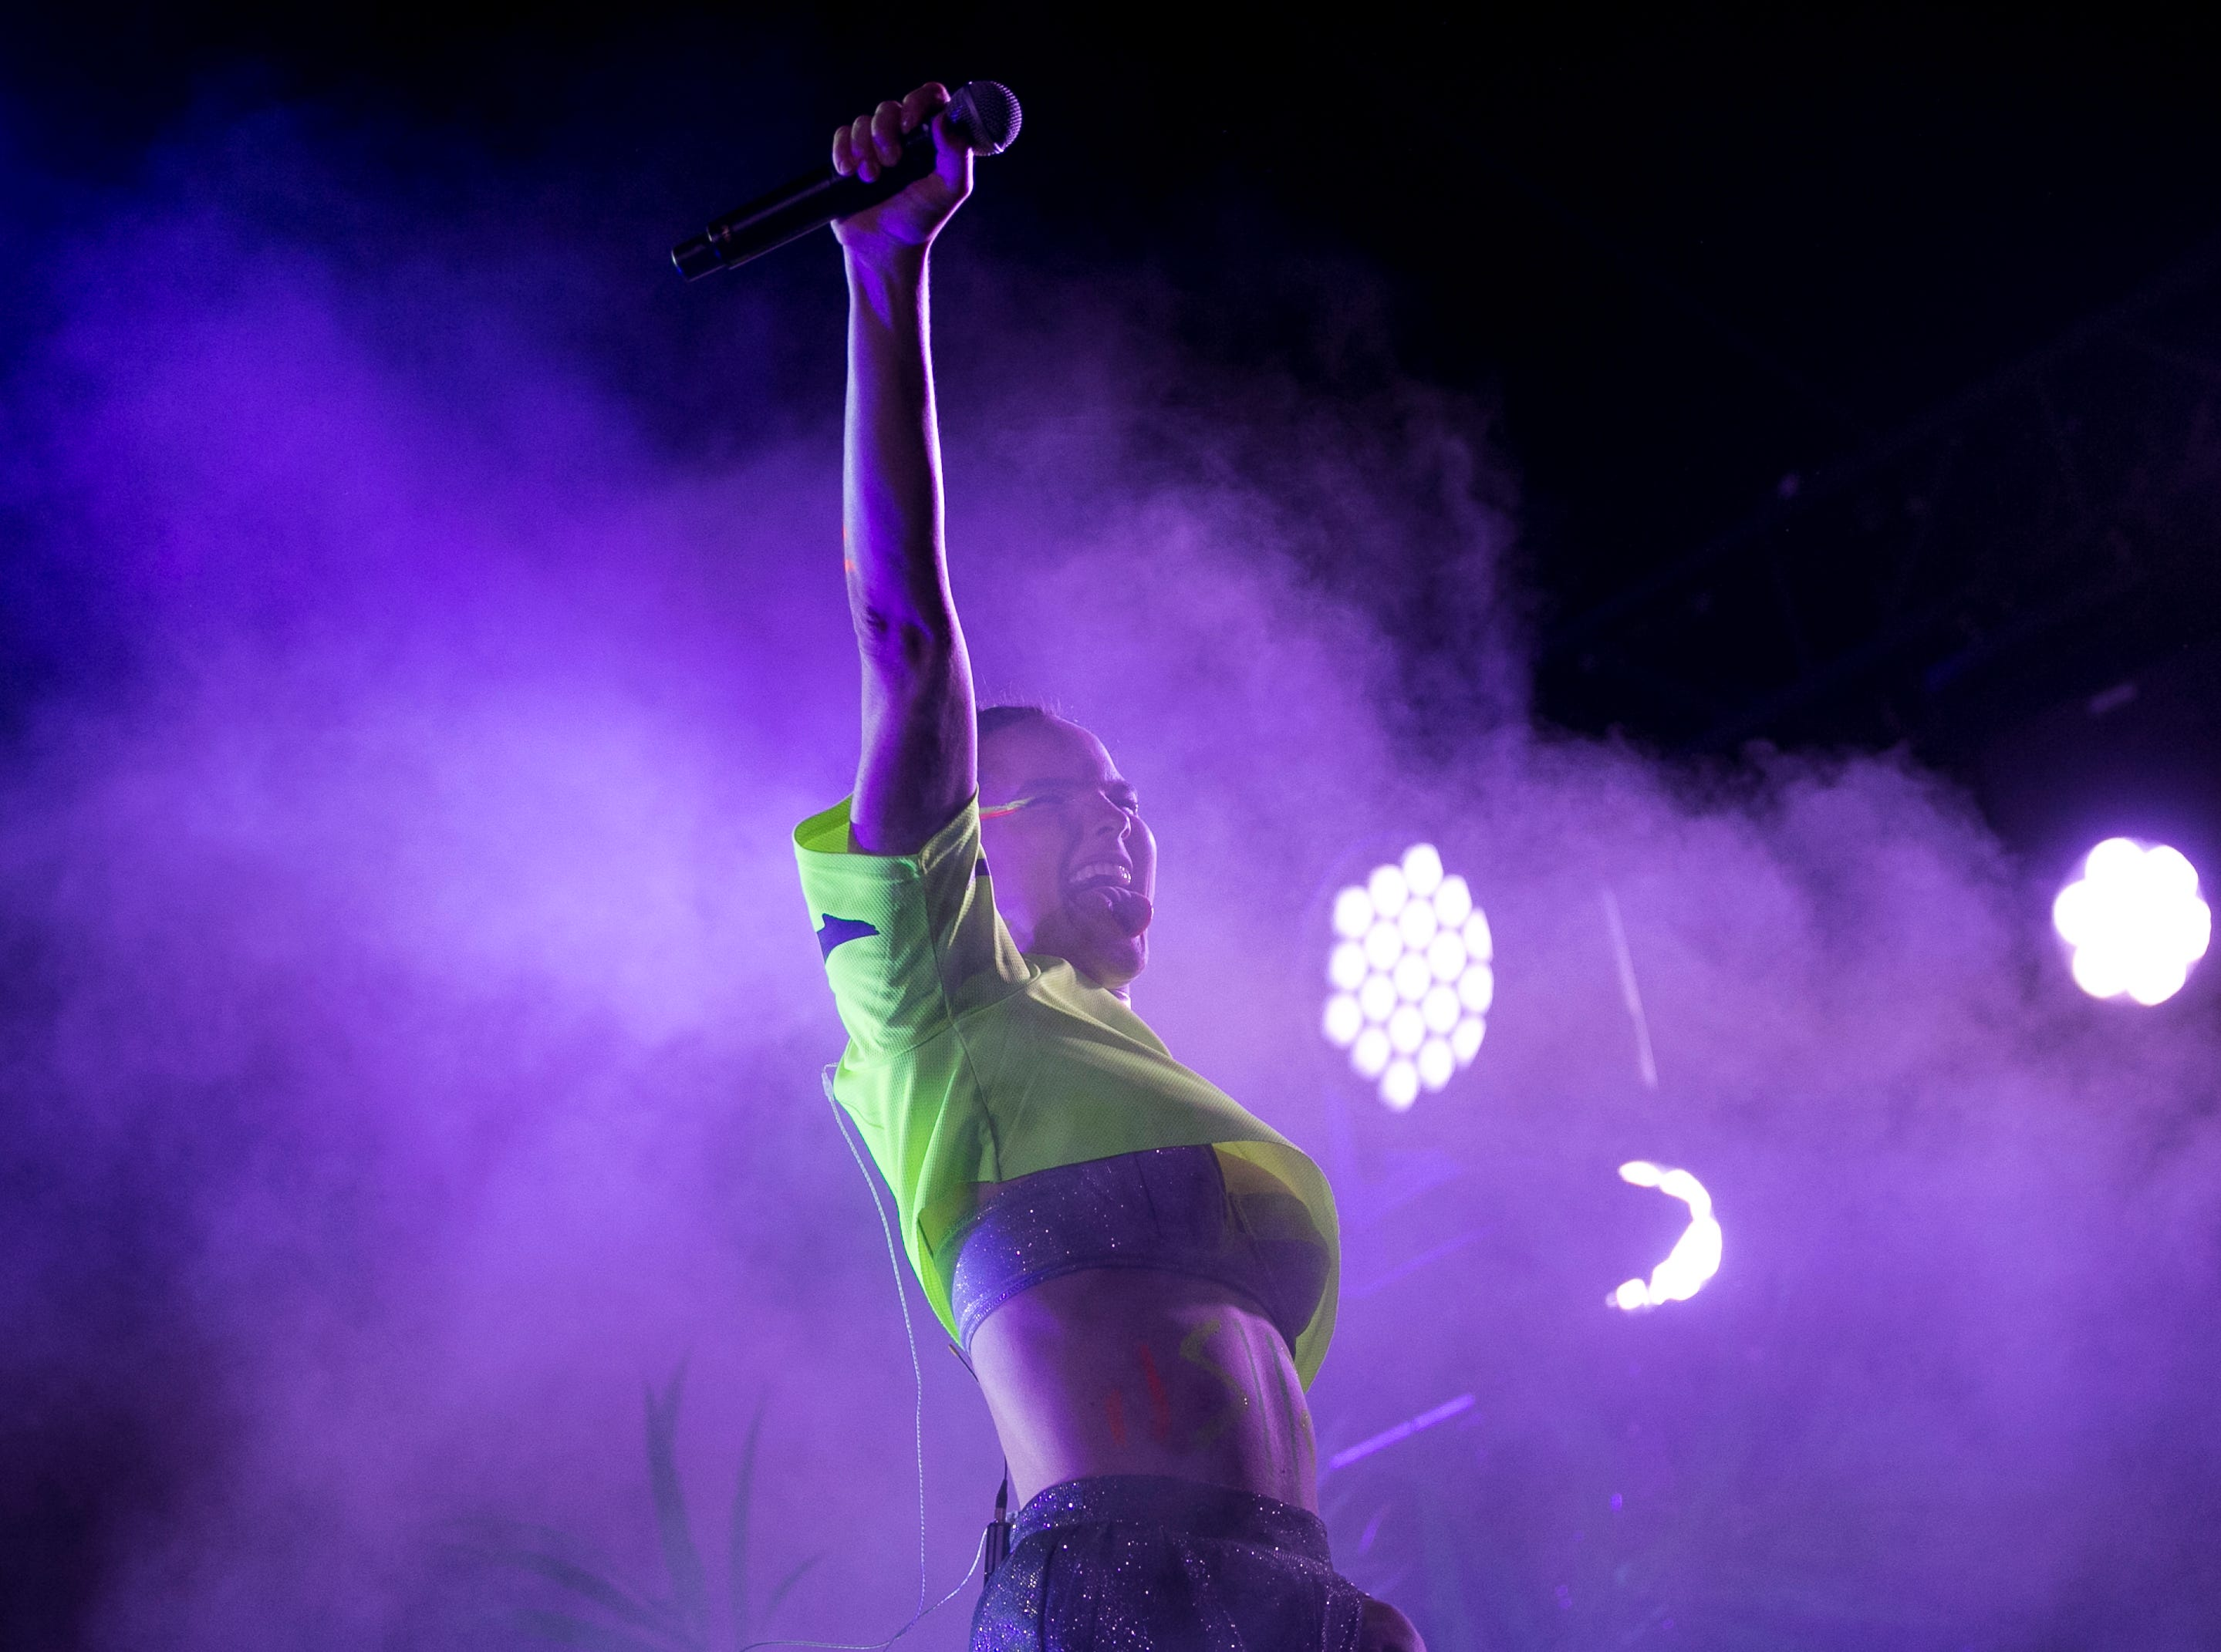 SOFI TUKKER perform at the Mojave stage the Coachella Valley Music and Arts Festival in Indio, Calif. on Sun. April 21, 2019.